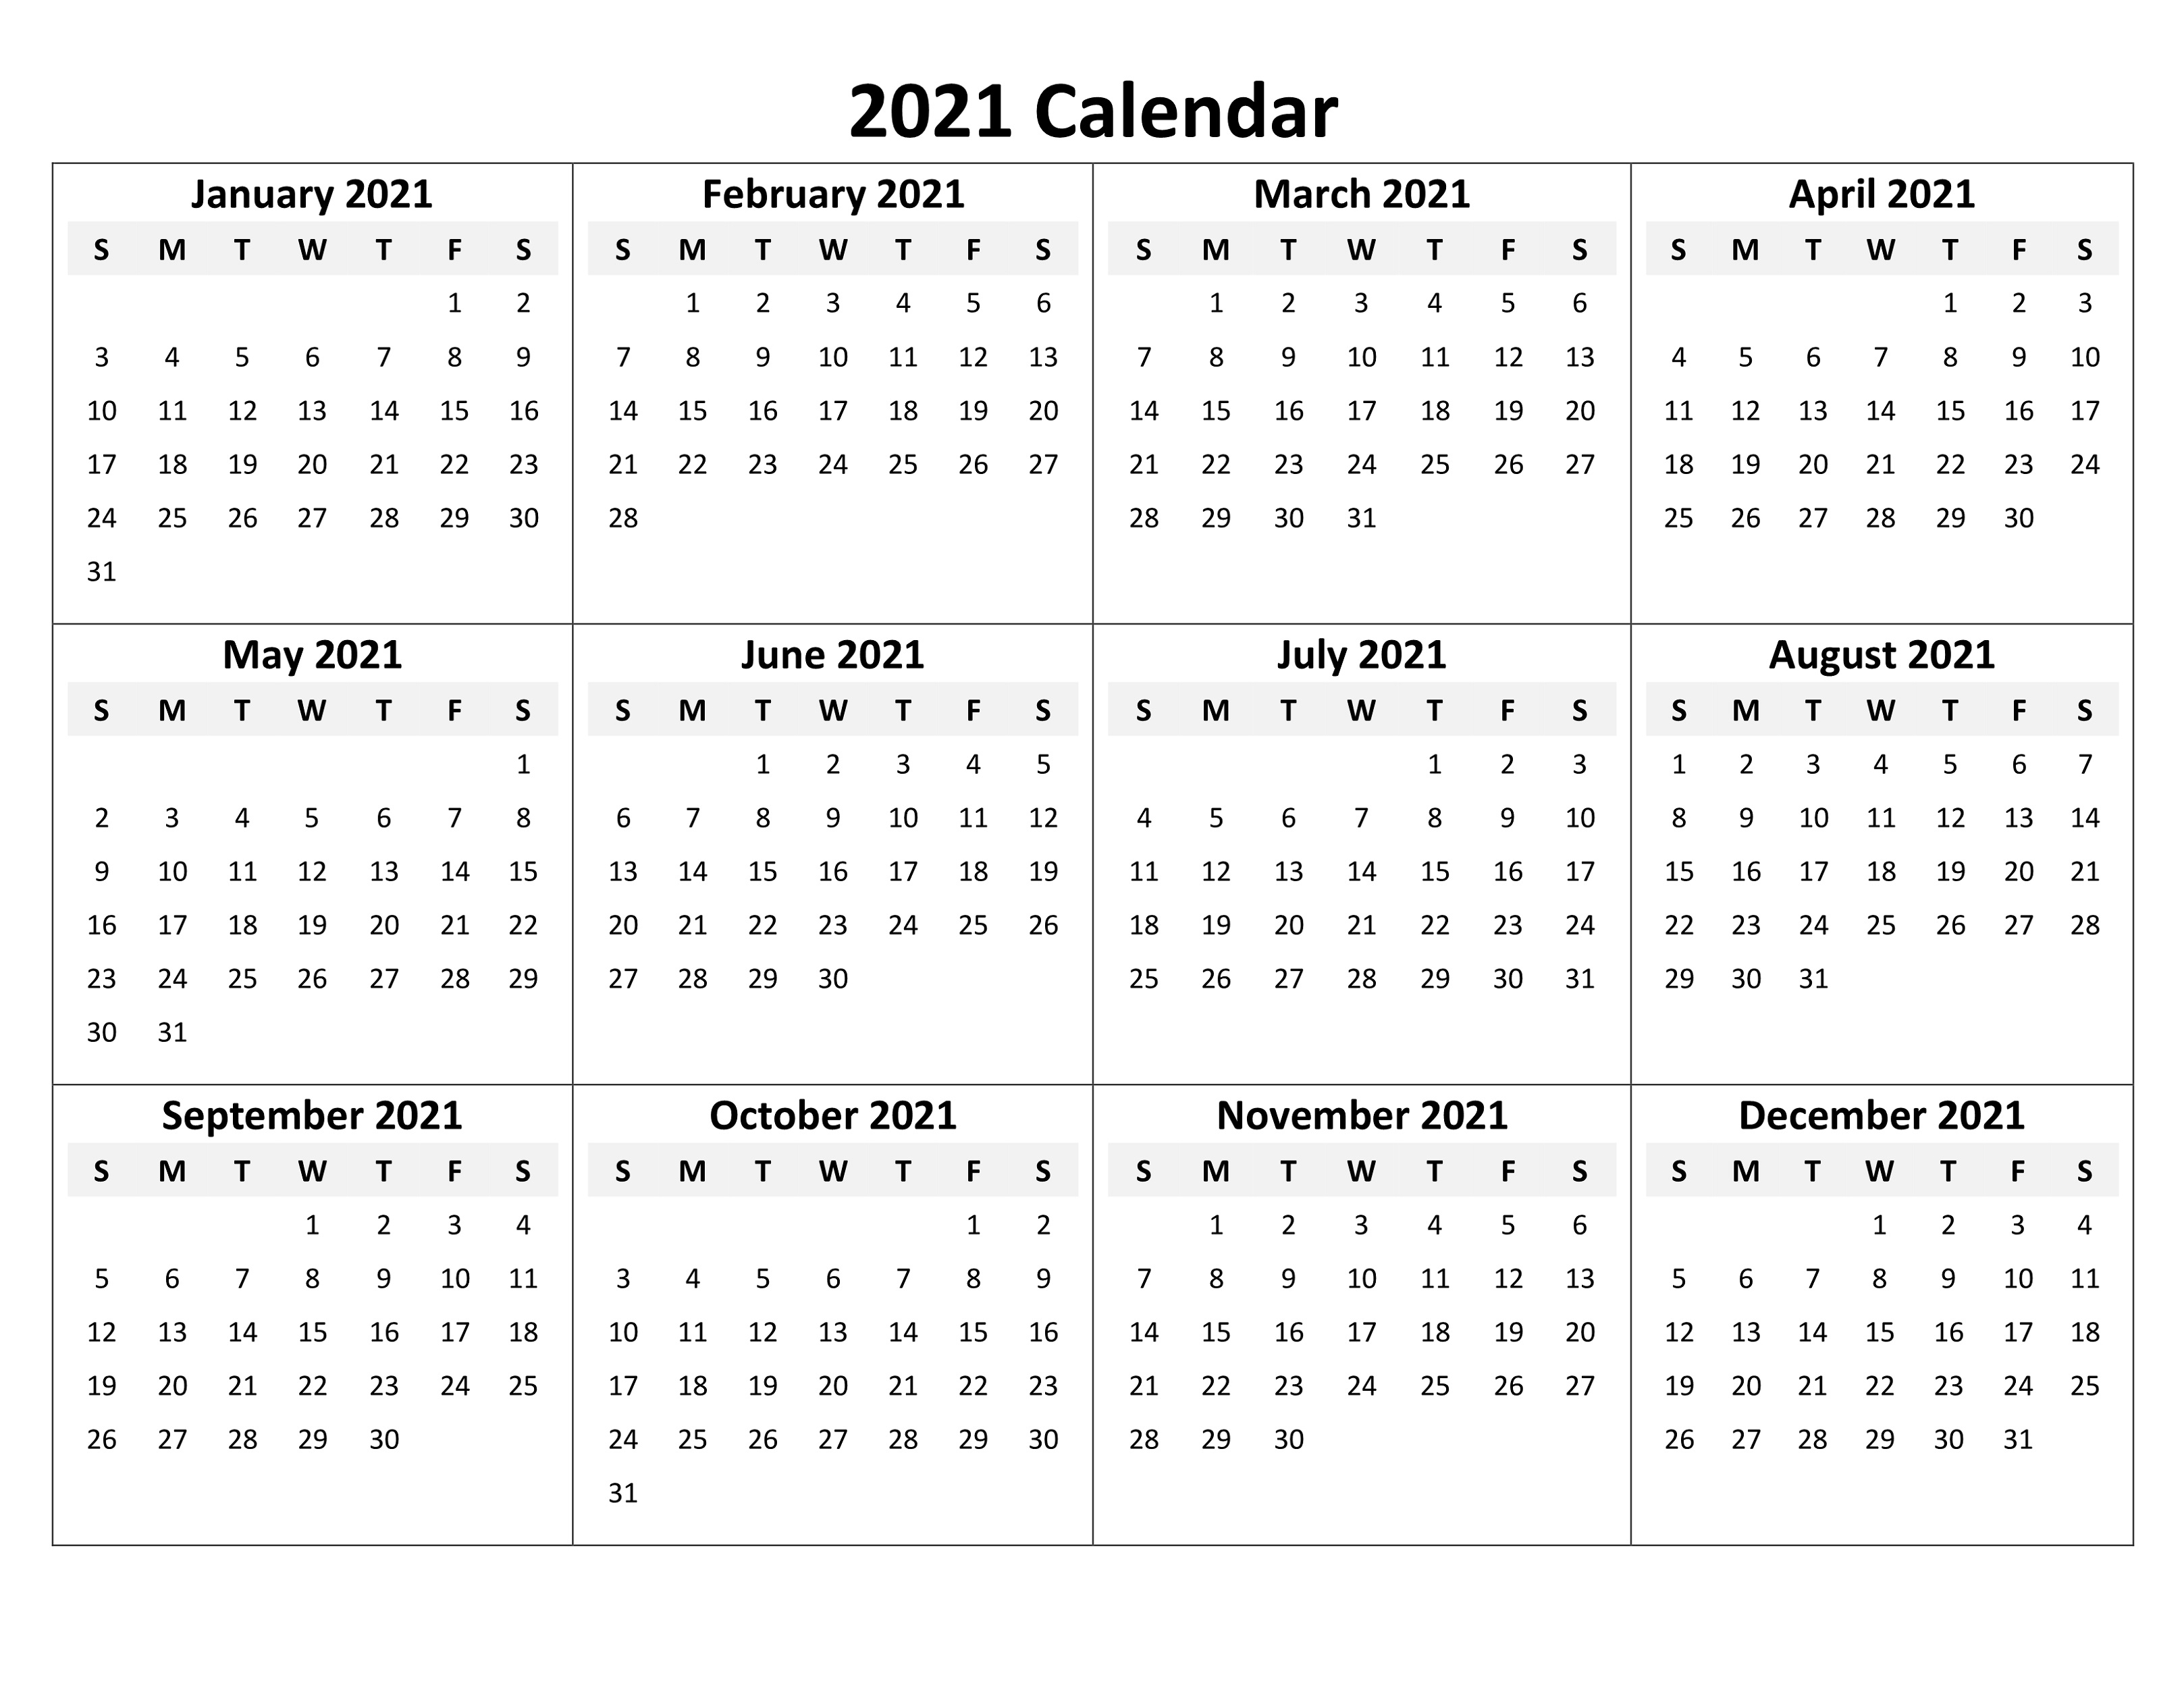 Printable Blank Calendar 2021 Yearly And Monthly | Calendar in 2021 Printable Calendar Free